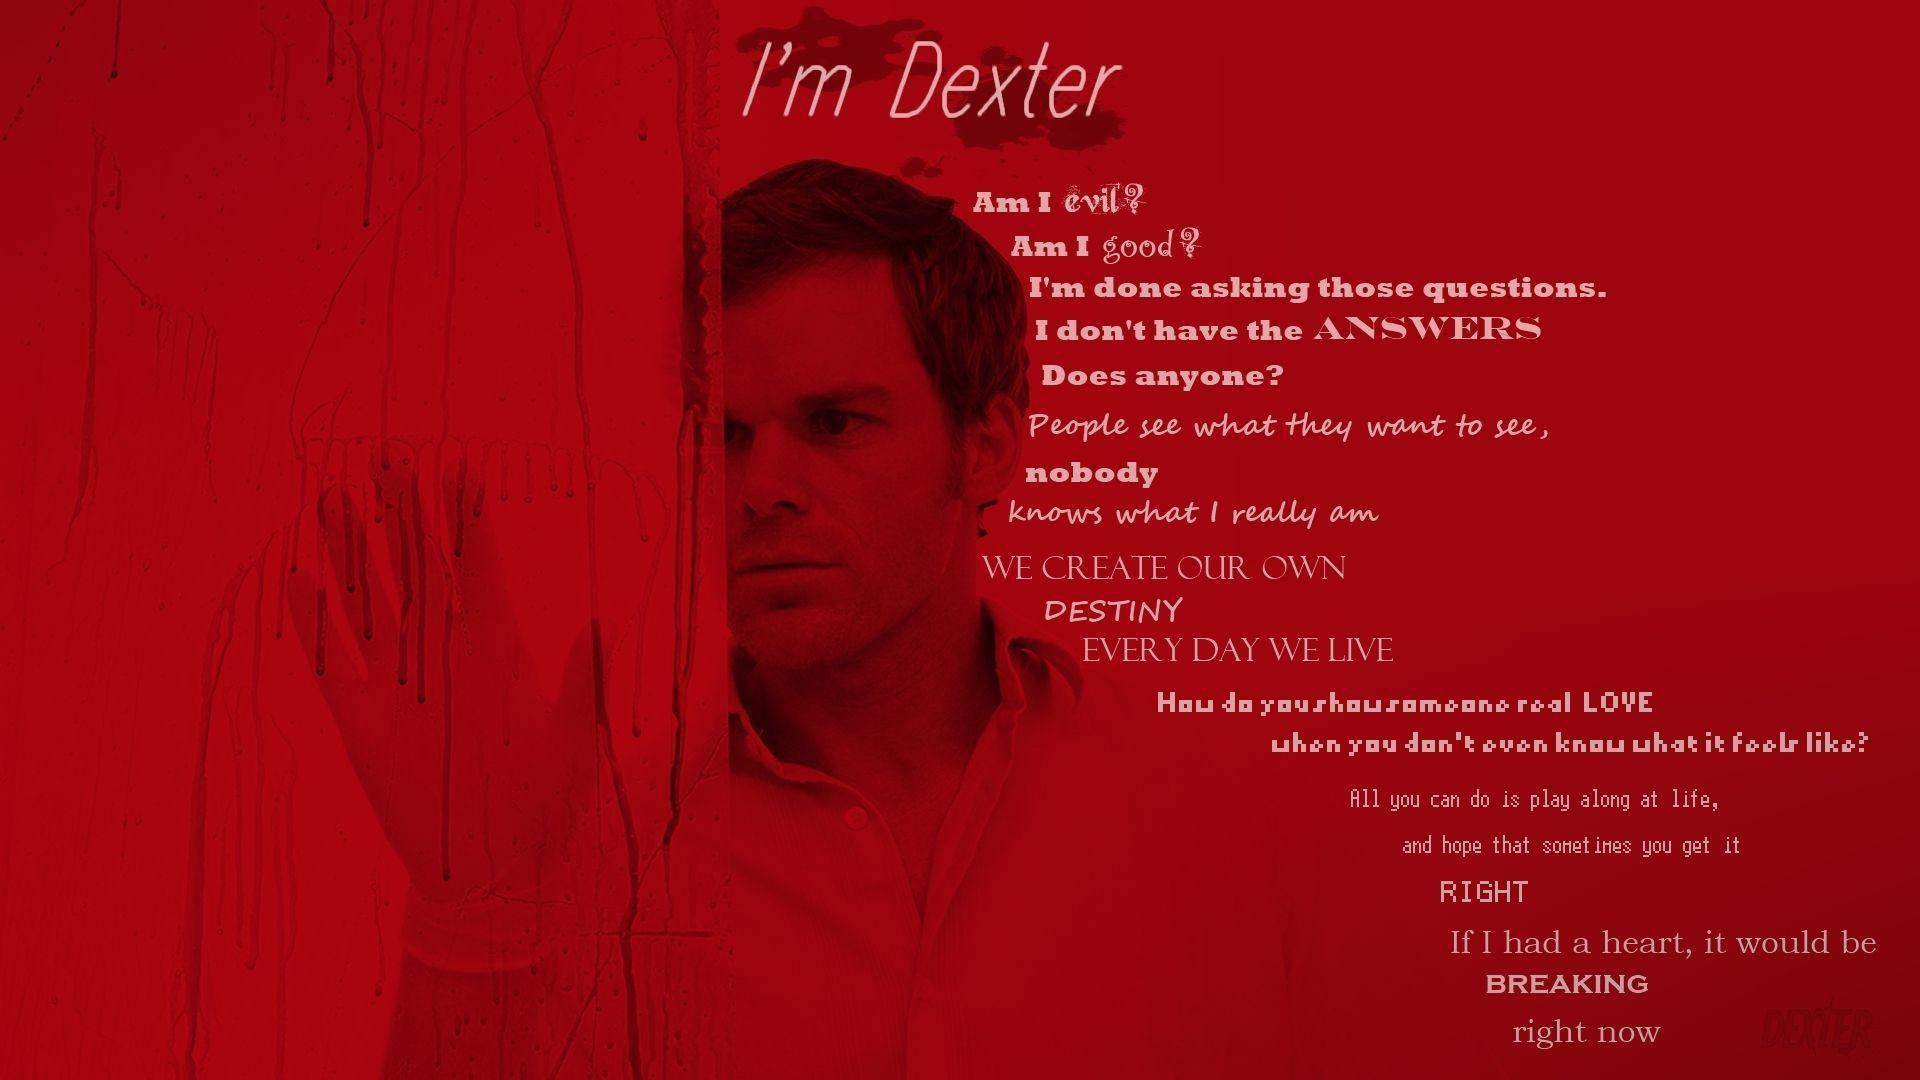 Dexter Quotes Wallpaper - Dexter Wallpaper (13505620) - Fanpop